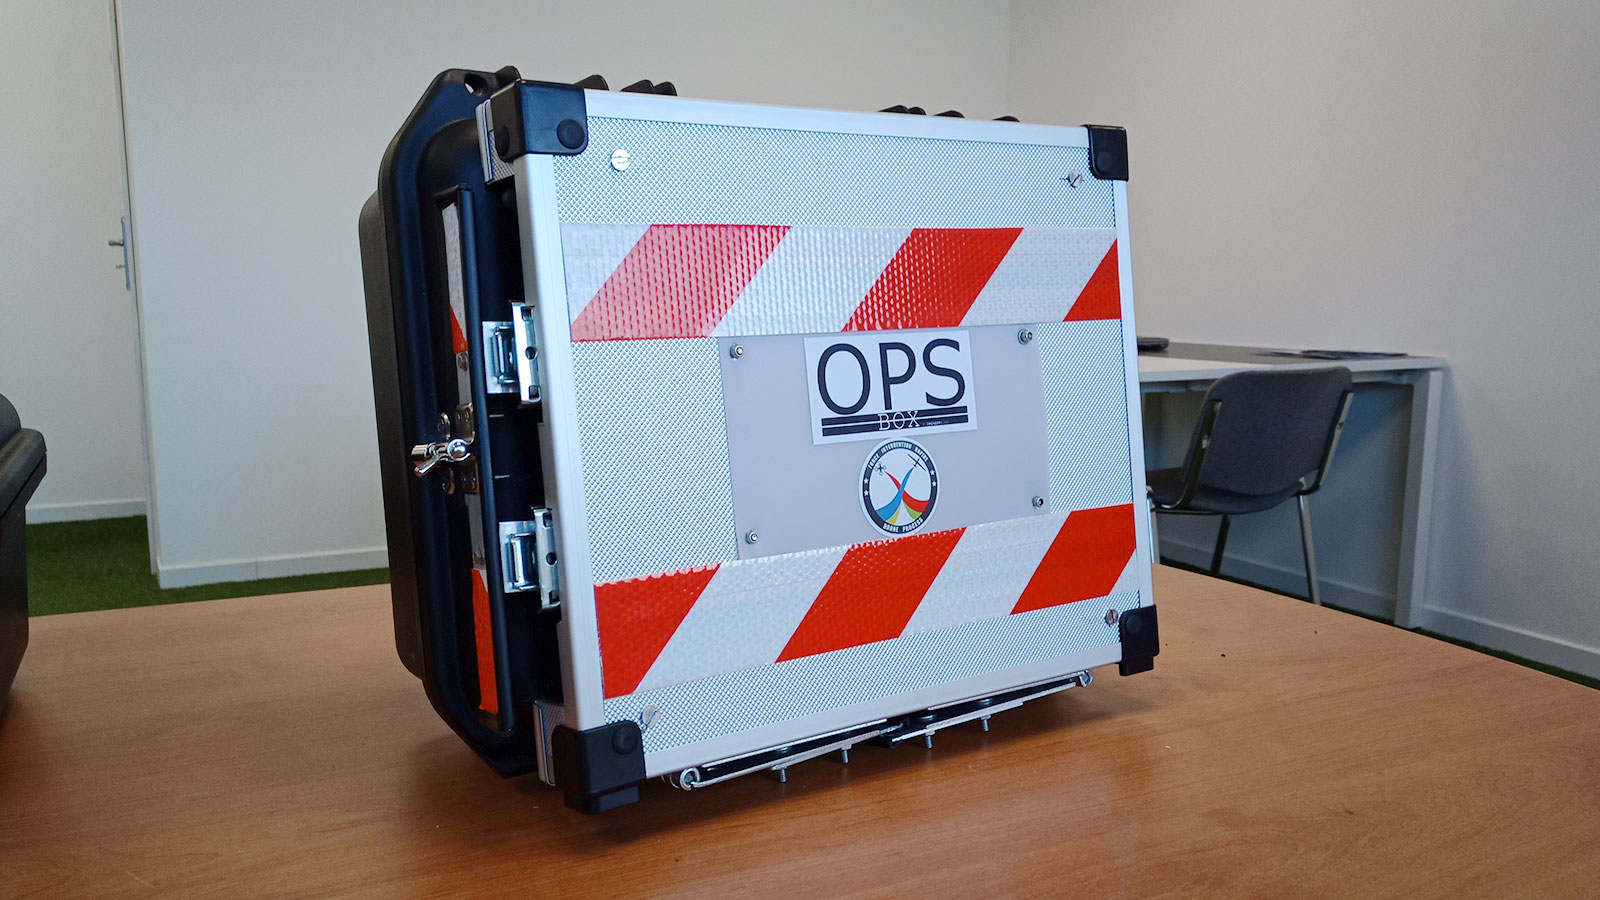 All of the equipment the FIR unit uses fits in this (OPS) box